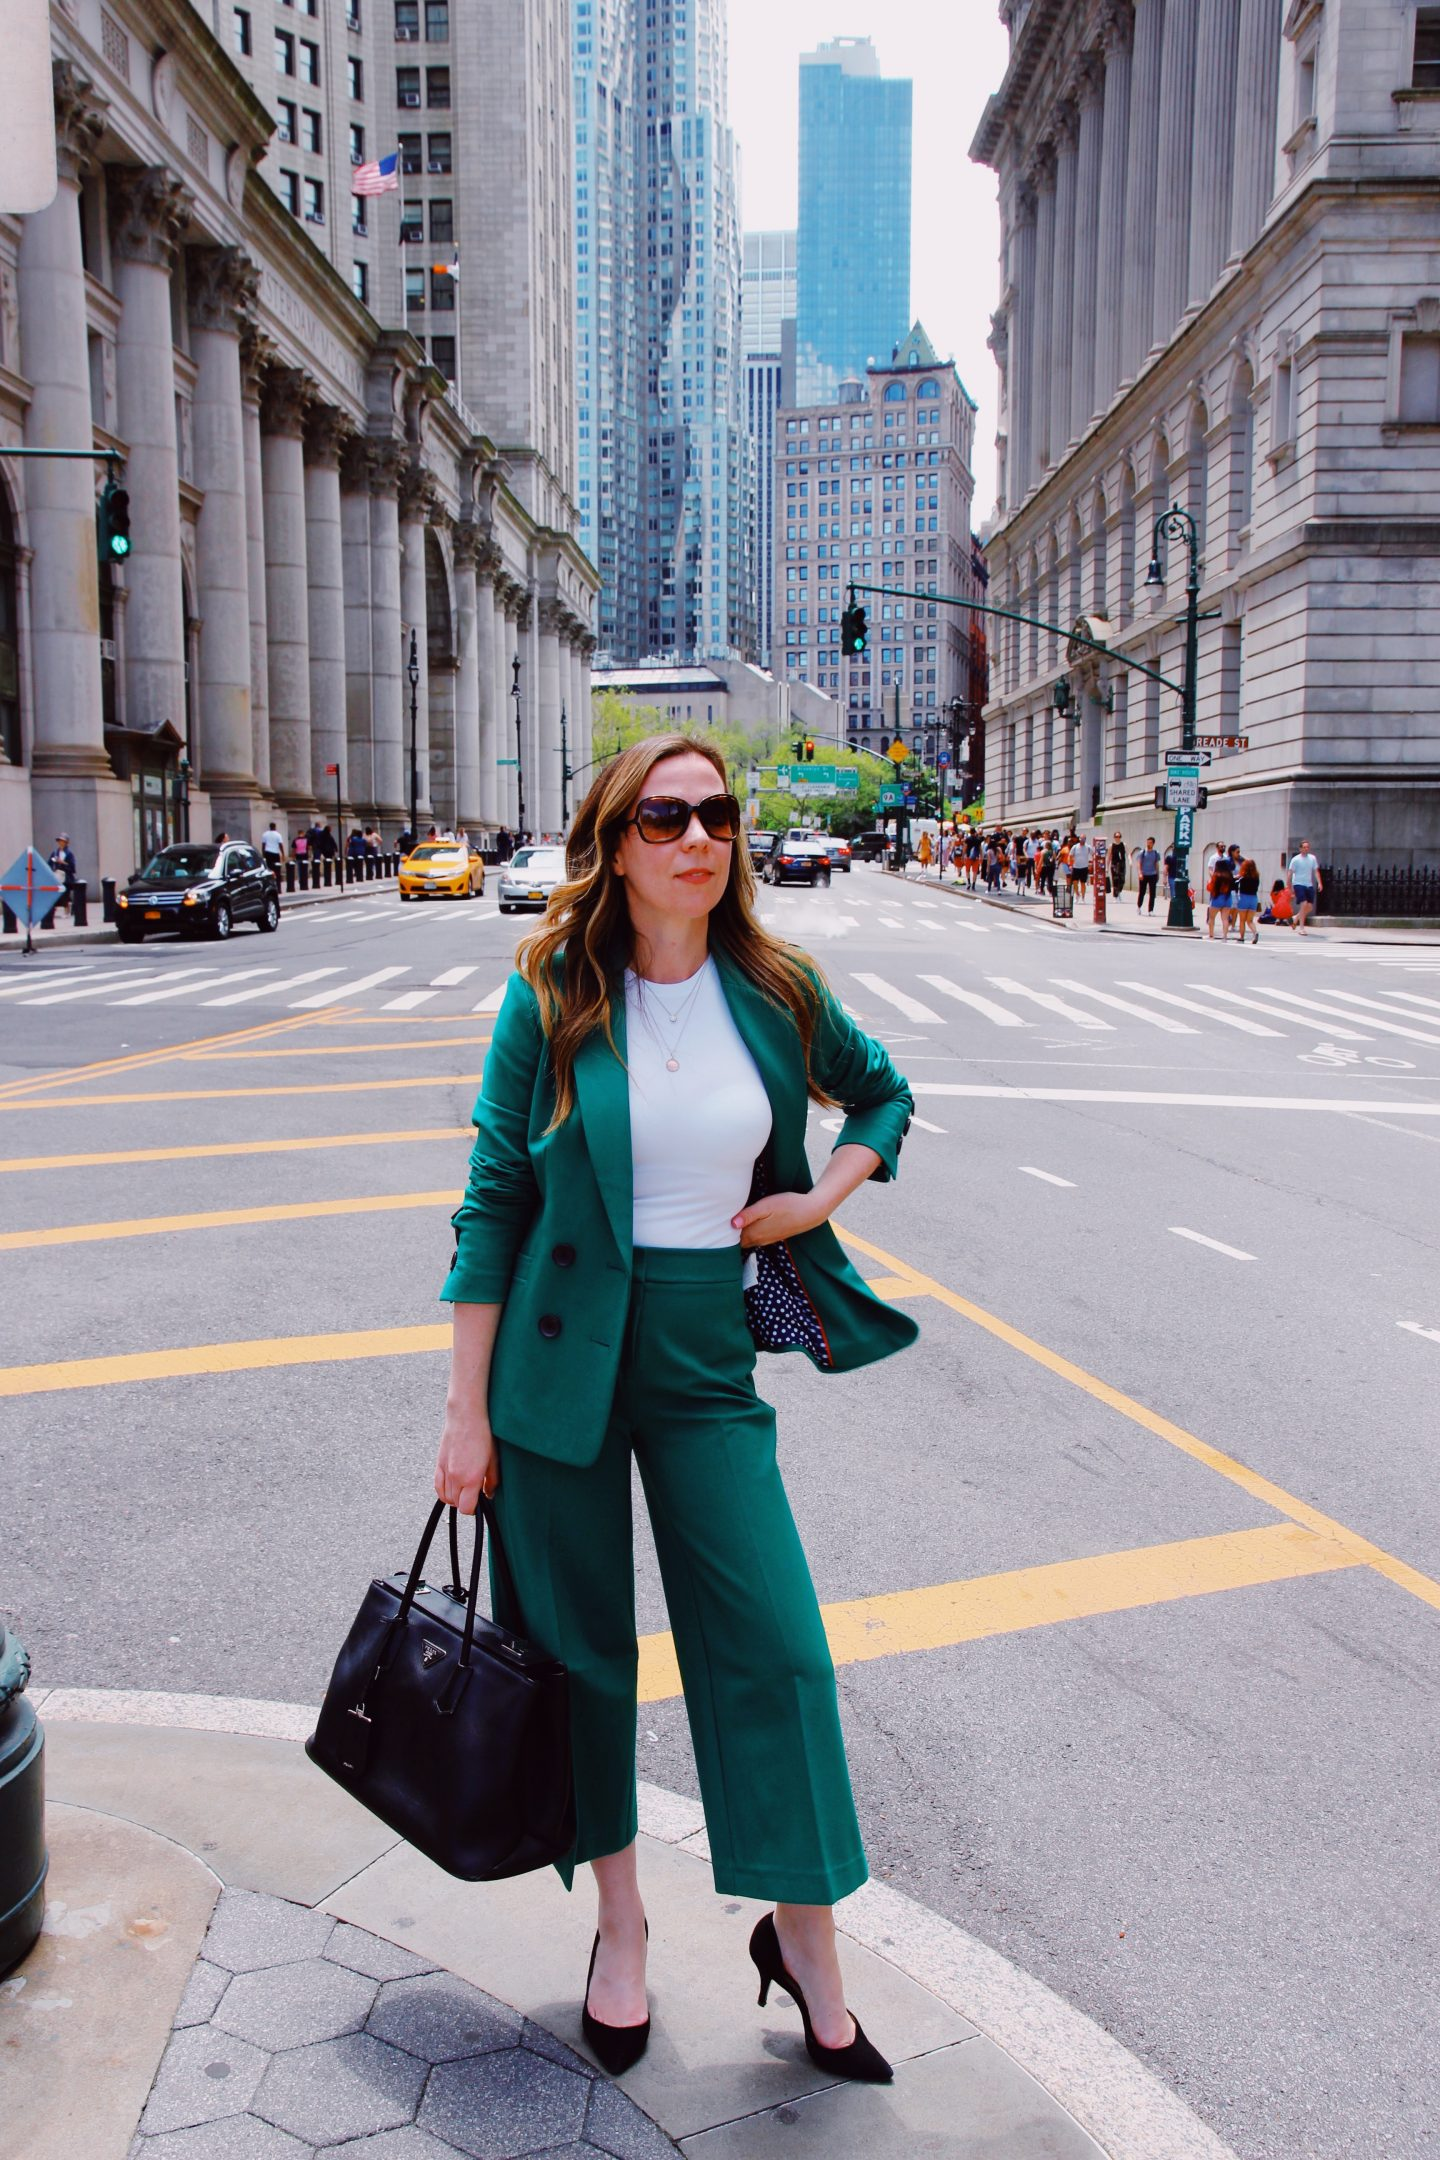 Women's Colored Suit for Work